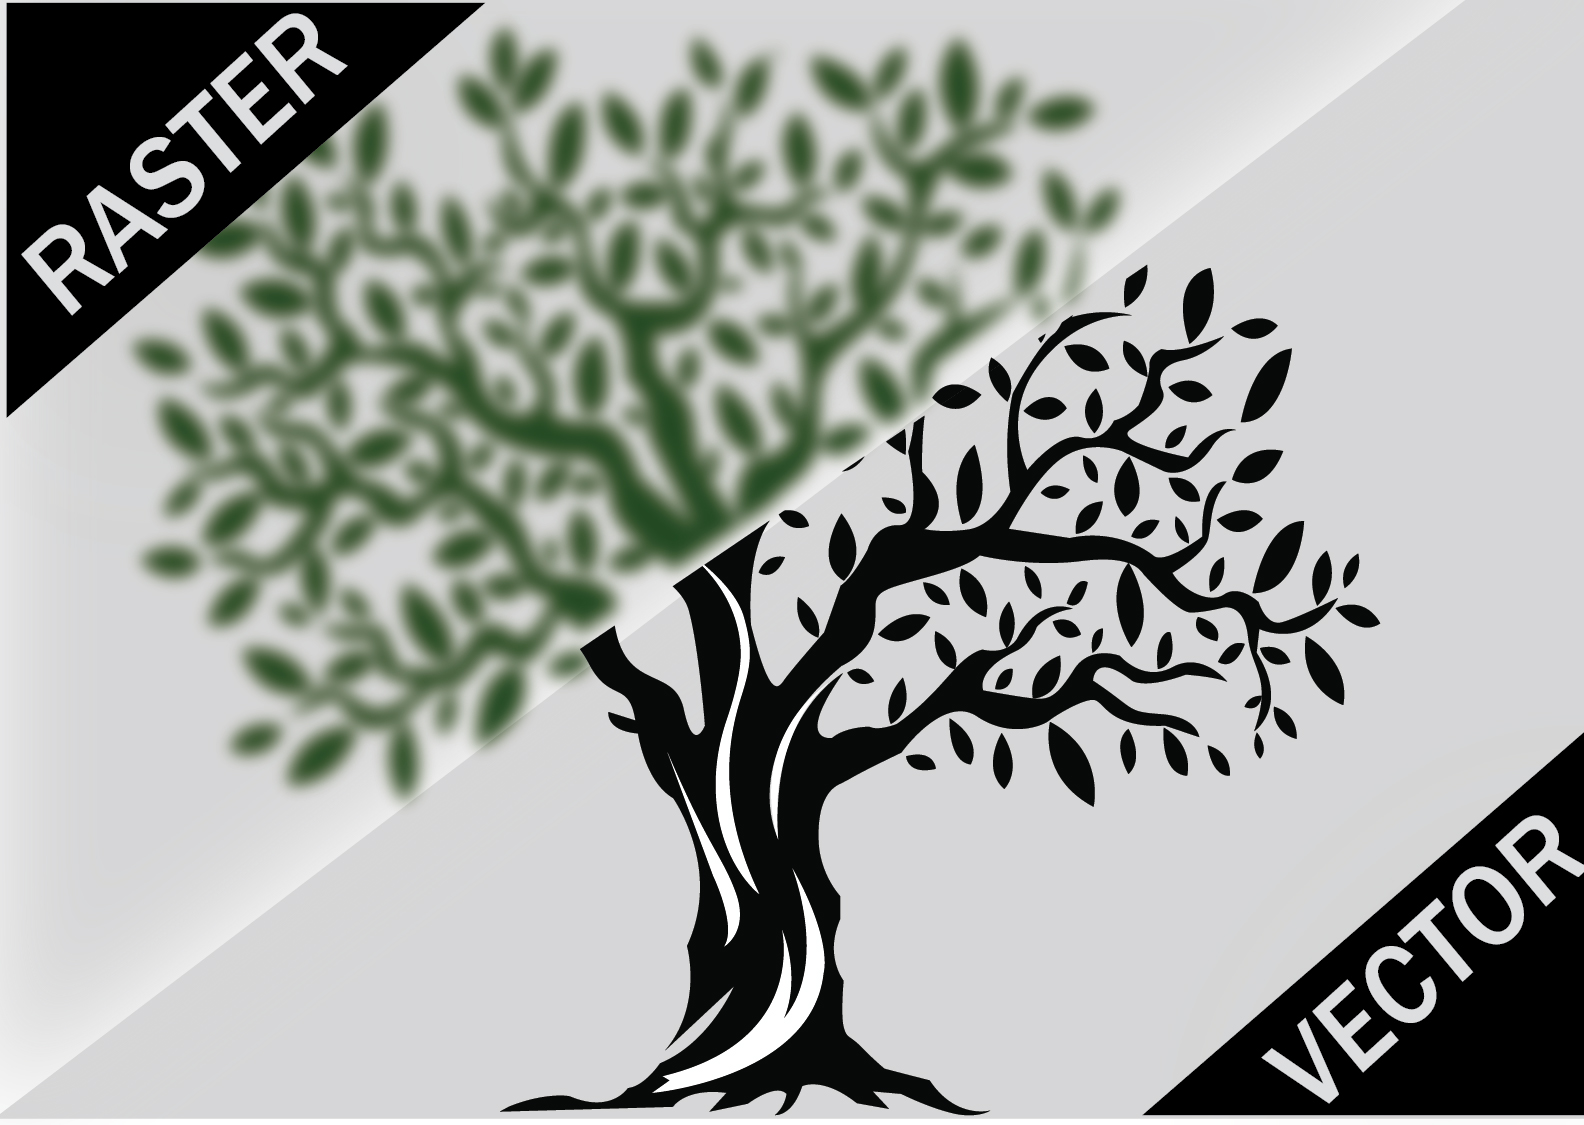 I will do vector a logo, image or anything in 12hr